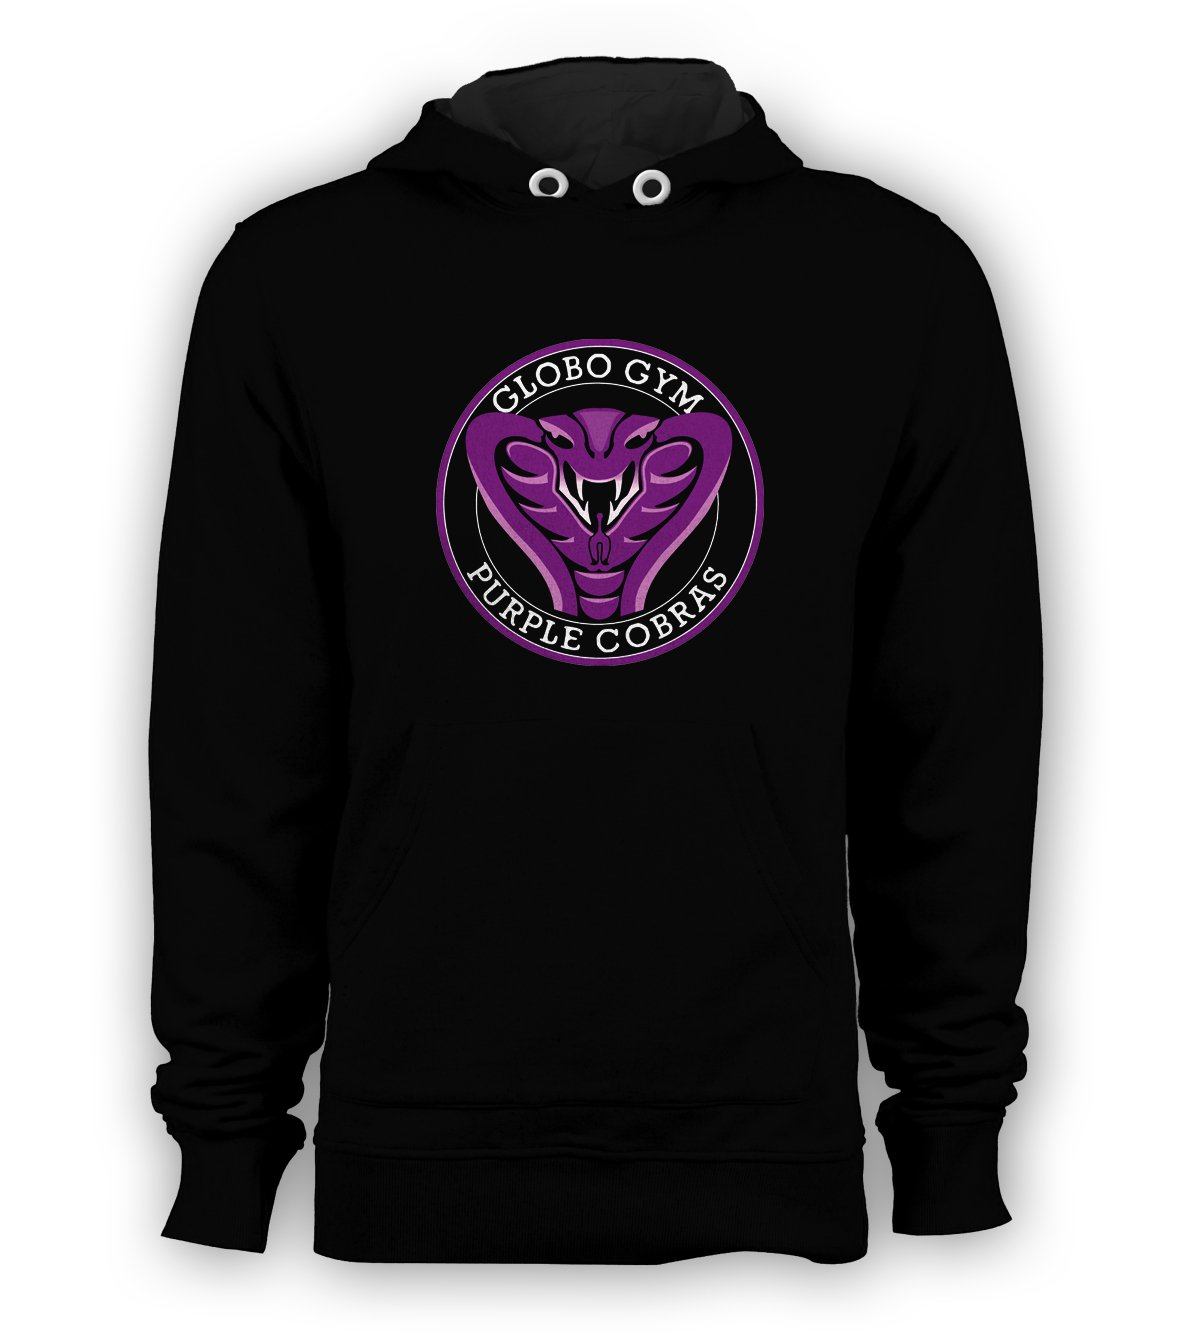 GLOBO GYM PURPLE COBRAS DODGEBALL Pullover Hoodie Men Sweatshirts Size S to 3XL New Black